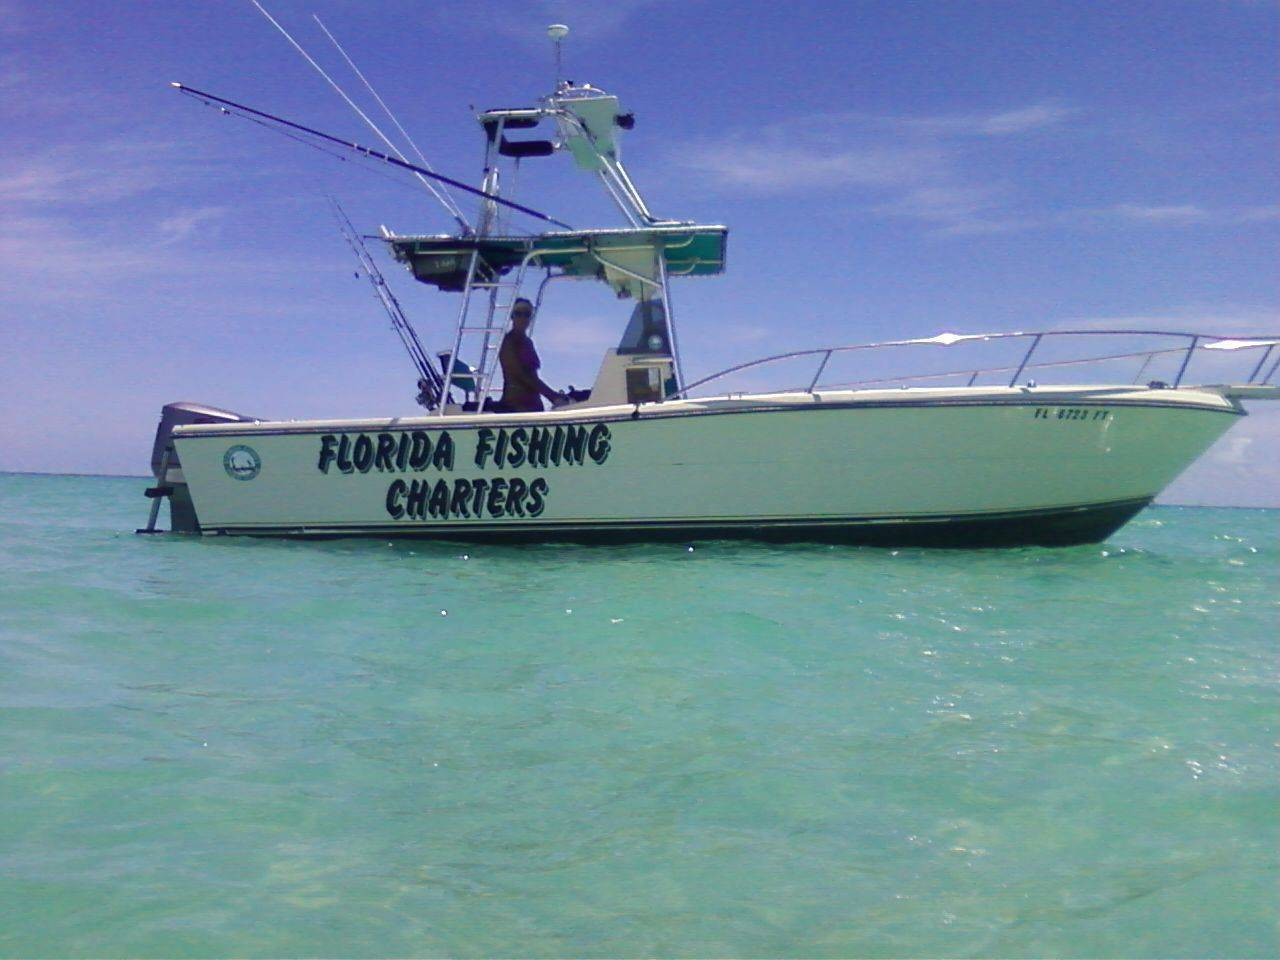 Florida Fishing Charters photo gallery